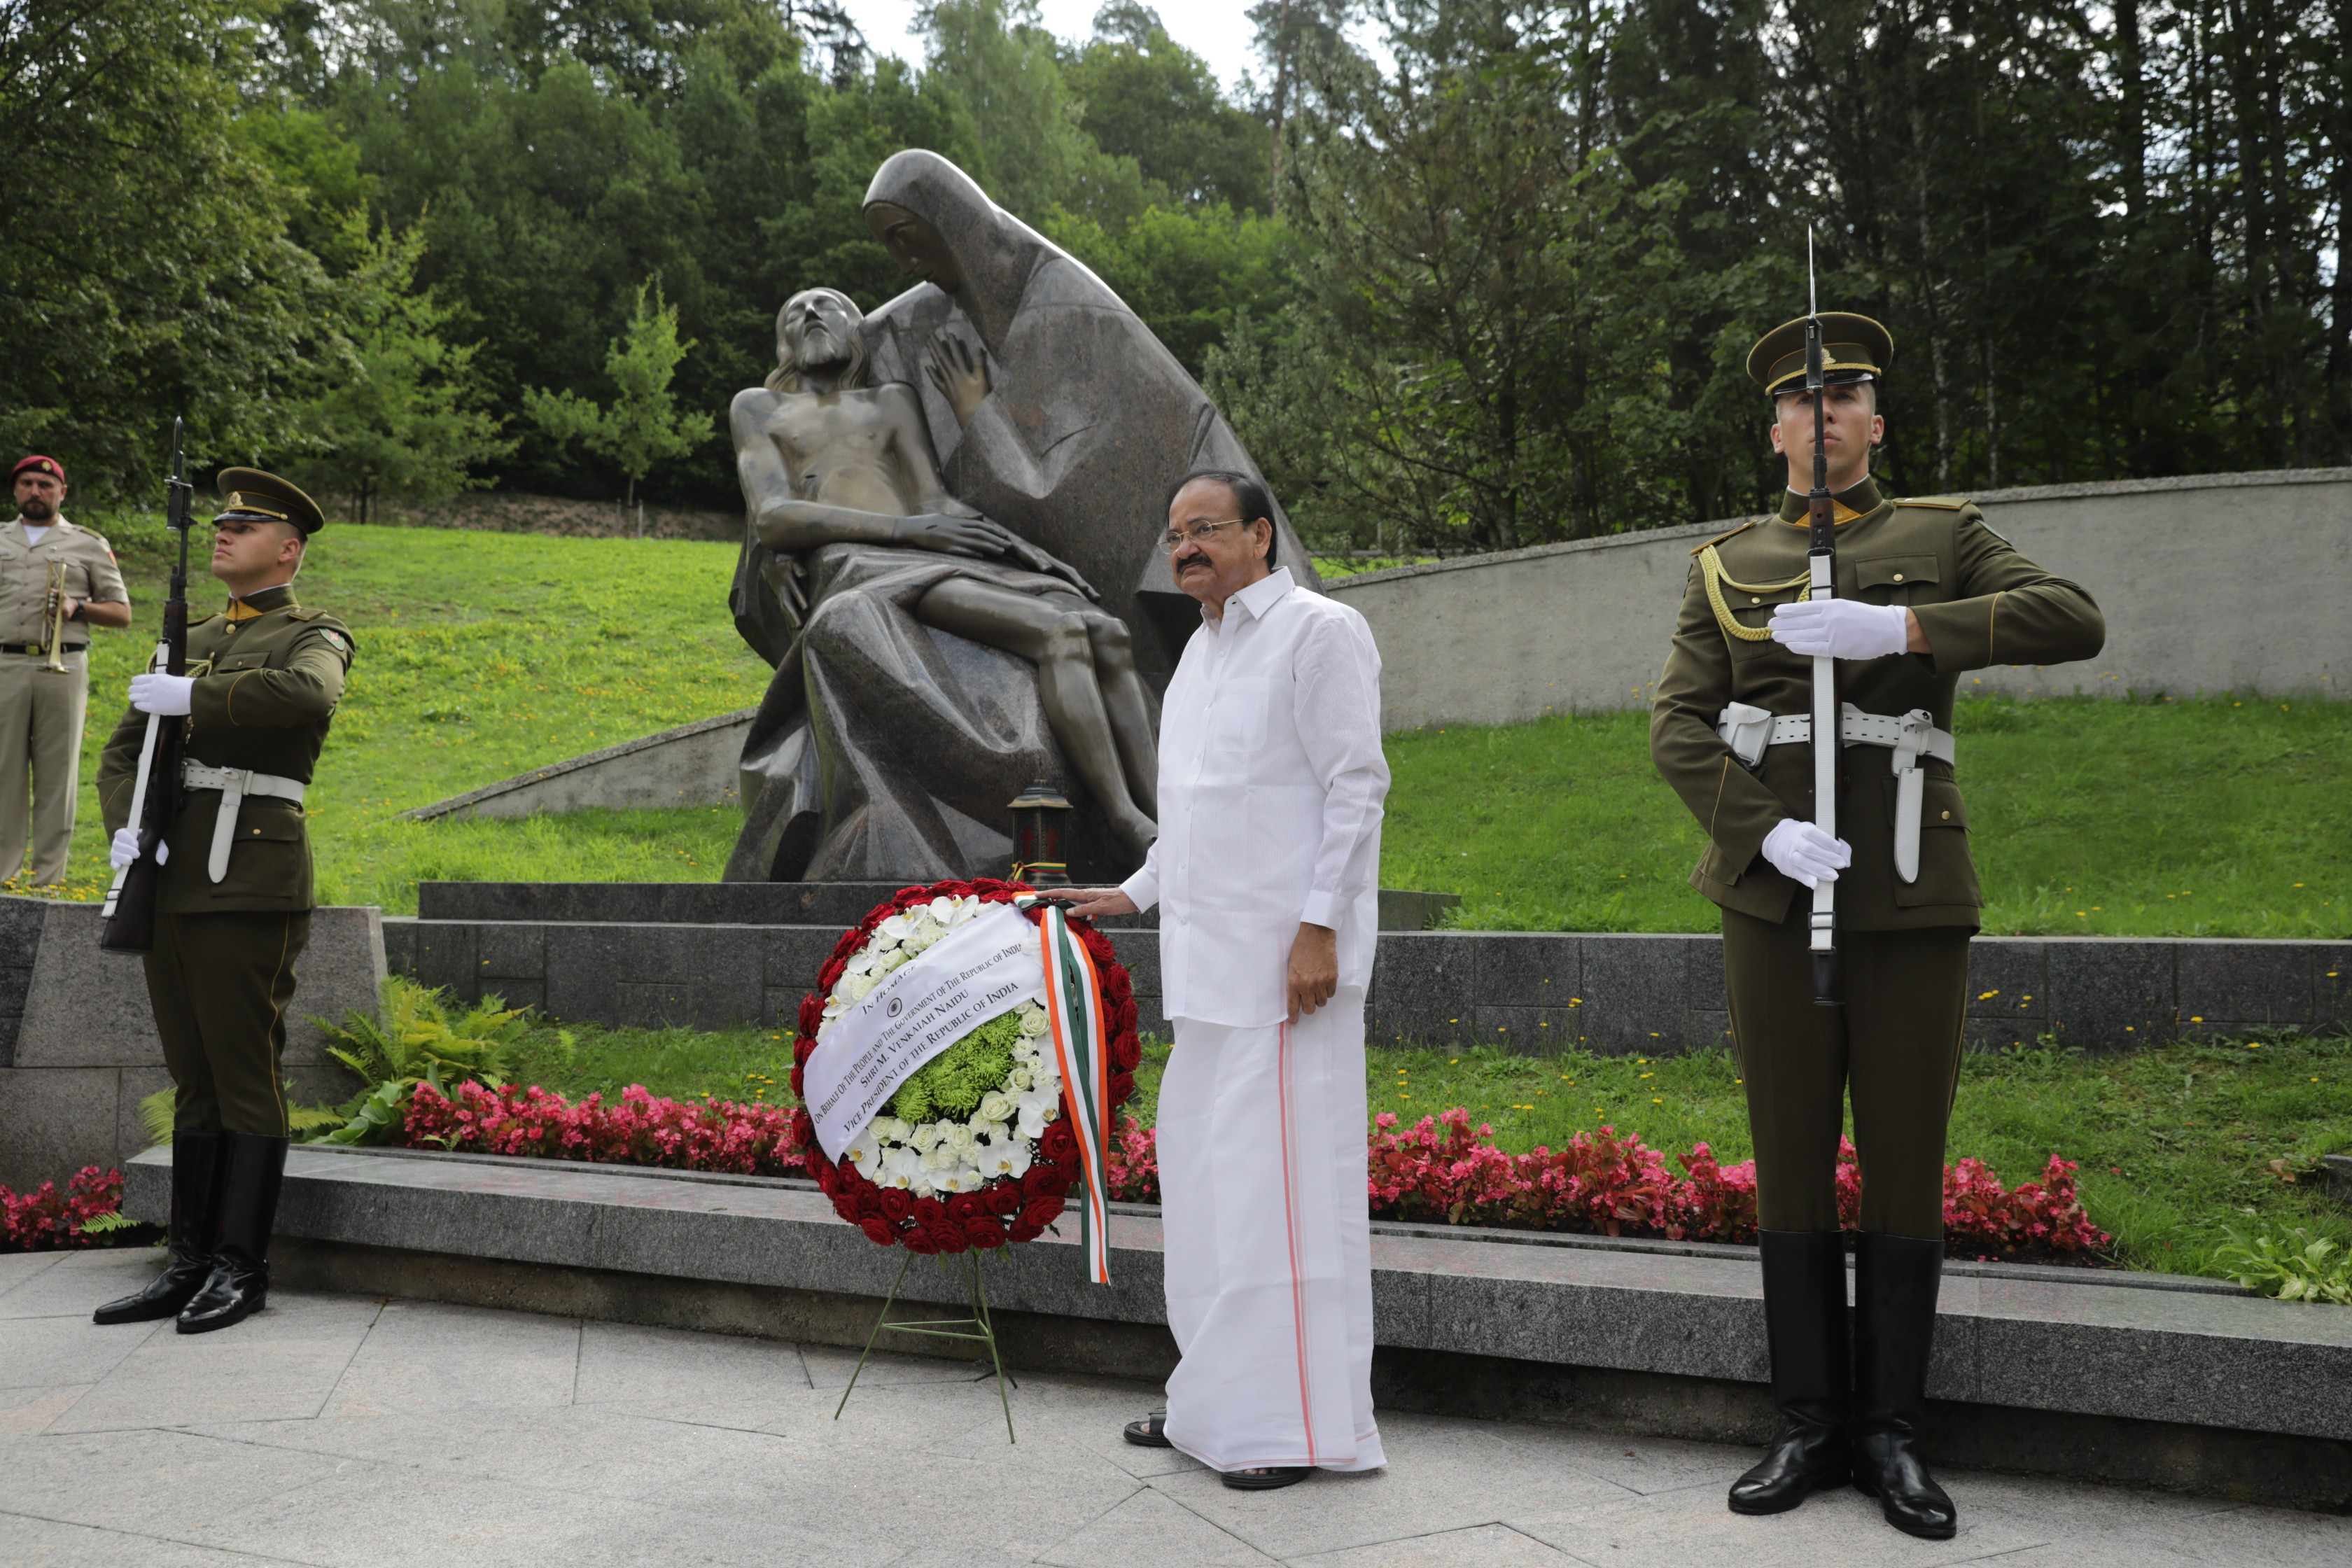 The Vice President, Shri M. Venkaiah Naidu paying homage to the fallen heroes of the Lithuanian Struggle for independence at the cemetery in Vilnius, Lithuania on August 19, 2019.